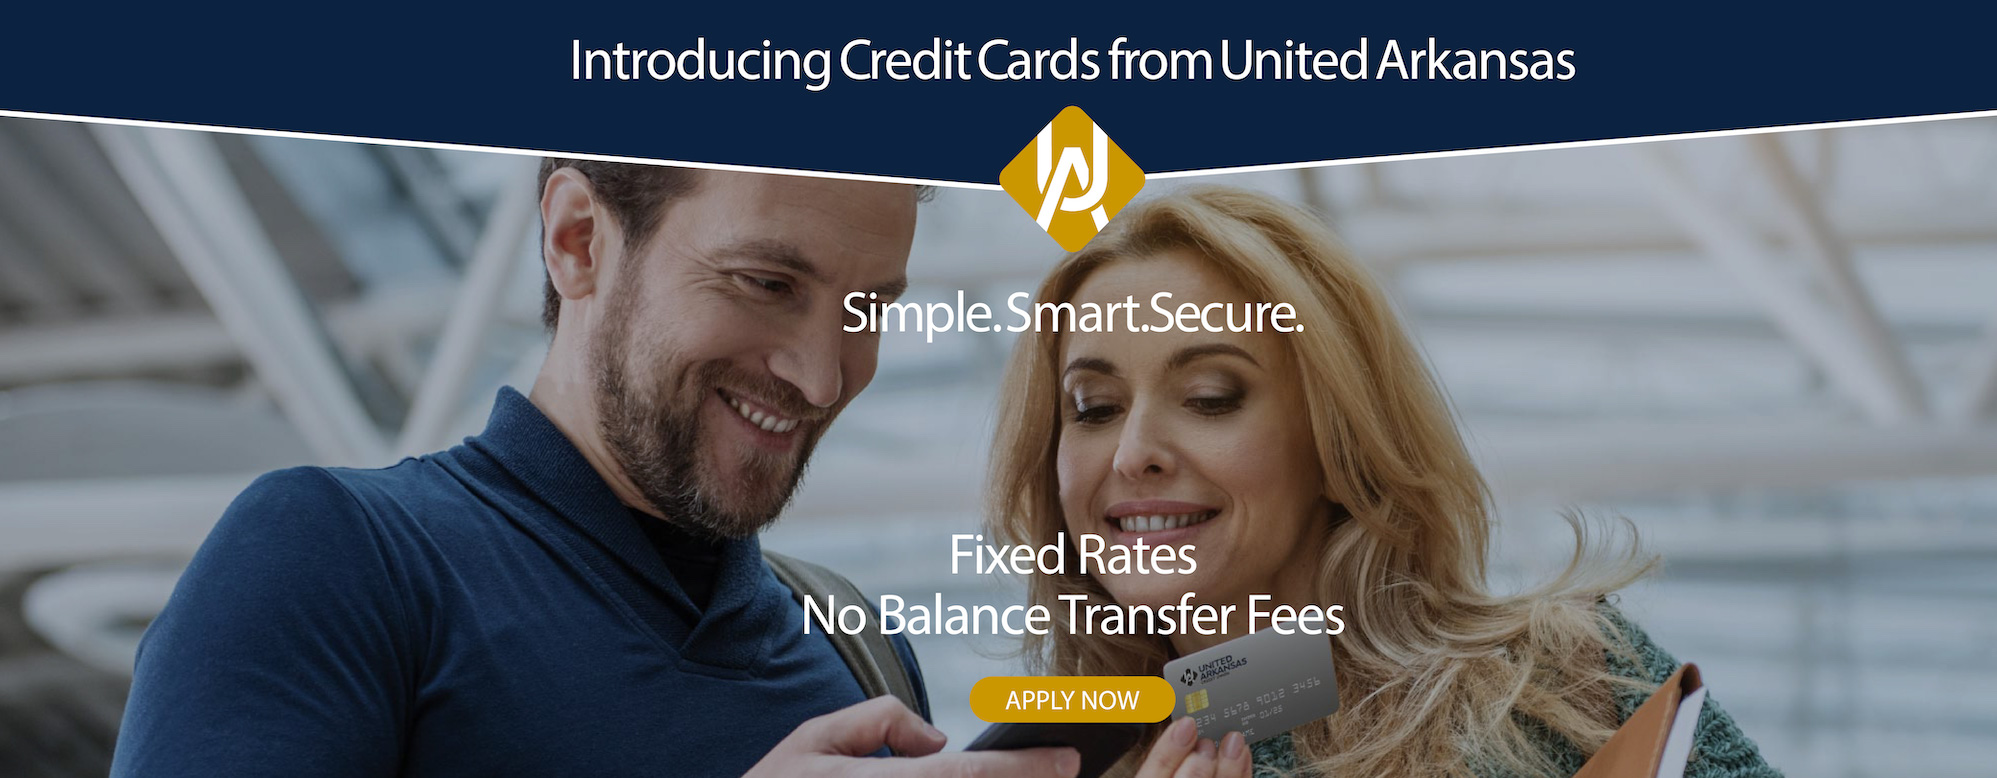 Introducing credit cards